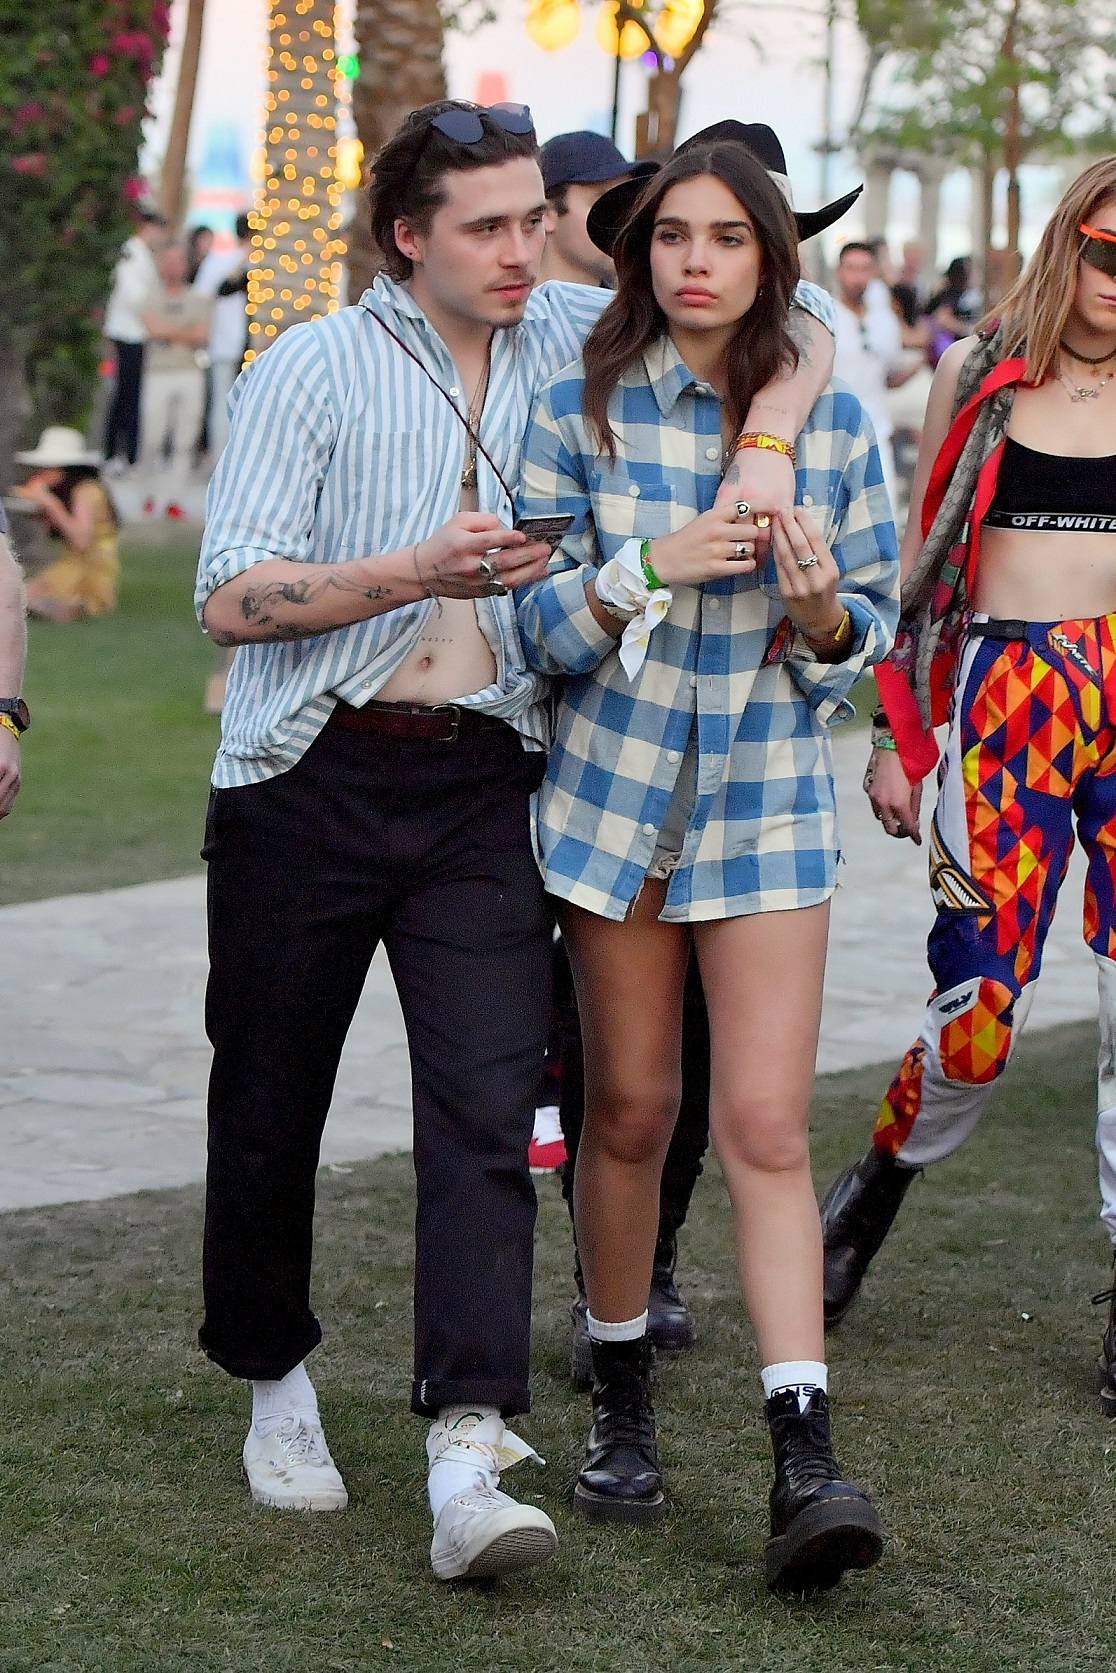 EXCLUSIVE: Brooklyn Beckham and his girlfriend Hana Cross chow down on some food at Coachella